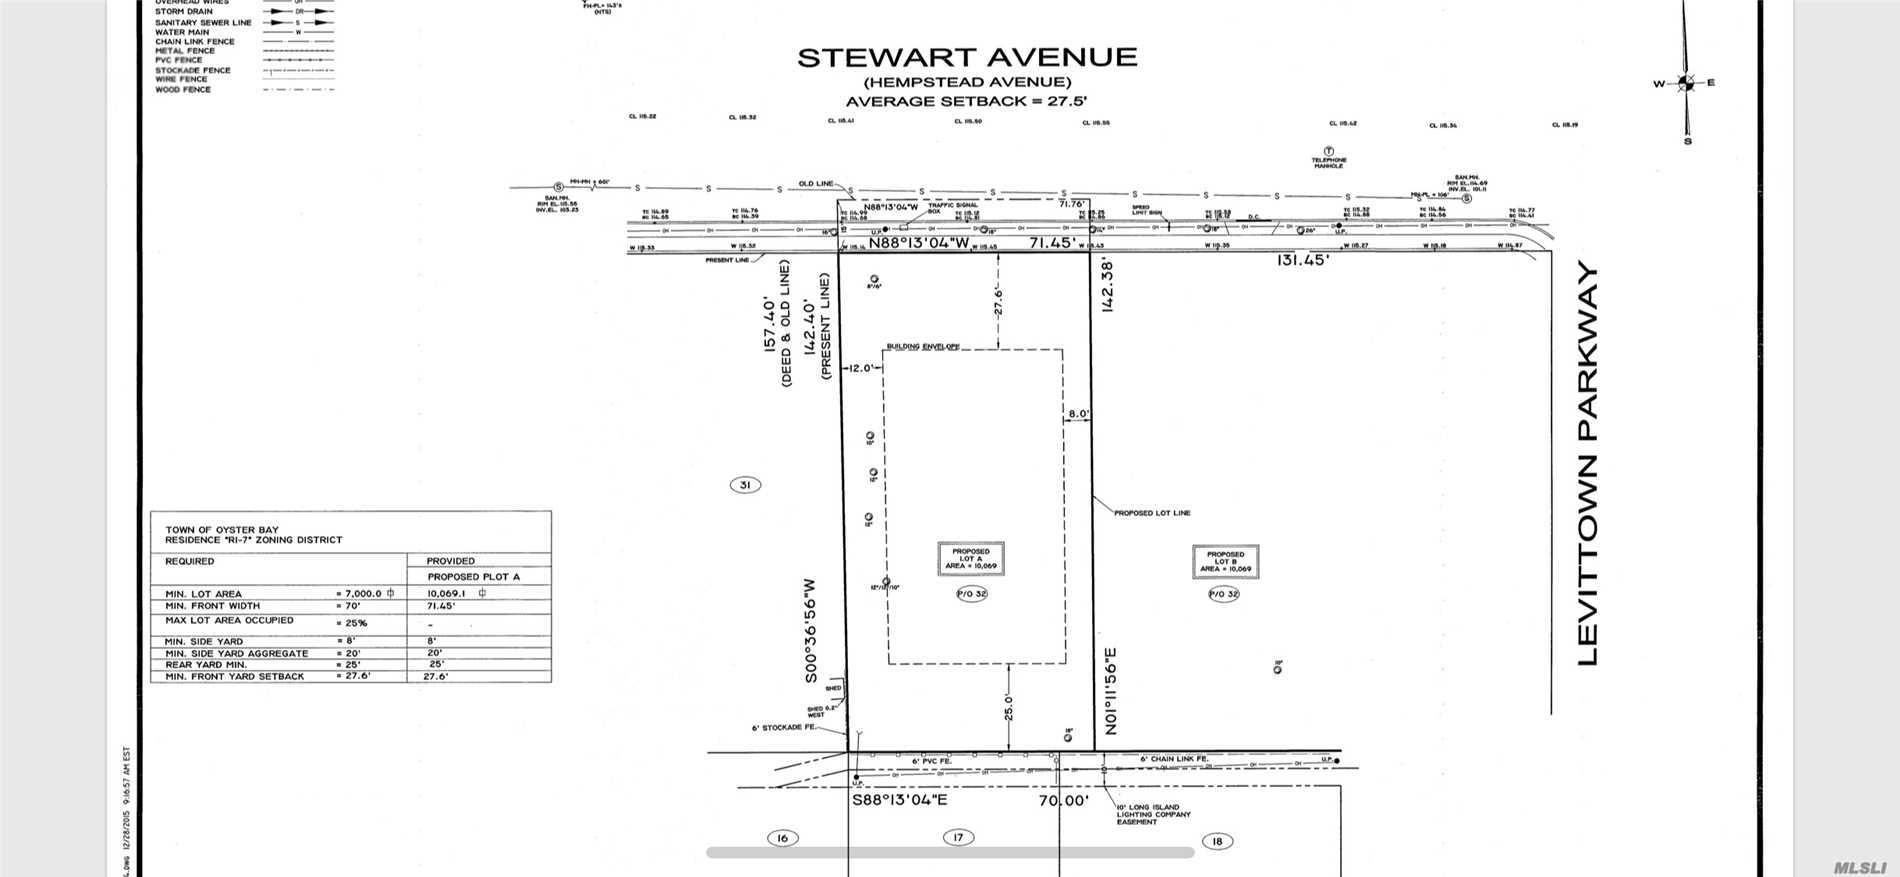 Huge piece of property (71x142=10k+ sq ft) for sale-- Plot A (WESTERN lot in 2-lot subdivision) already fully-approved building plot by Nassau County Planning Commission... Buyer/Builder only needs to get own plans drawn-up & then submit for necessary building permits directly to/with Town of Oyster Bay Bldg Dept, as if for any other new home project on a single & separate build-able lot of land. Applicable zoning allows for approx 3800 sq ft (+ bsmt) new home w/many new home comps over $1mil!